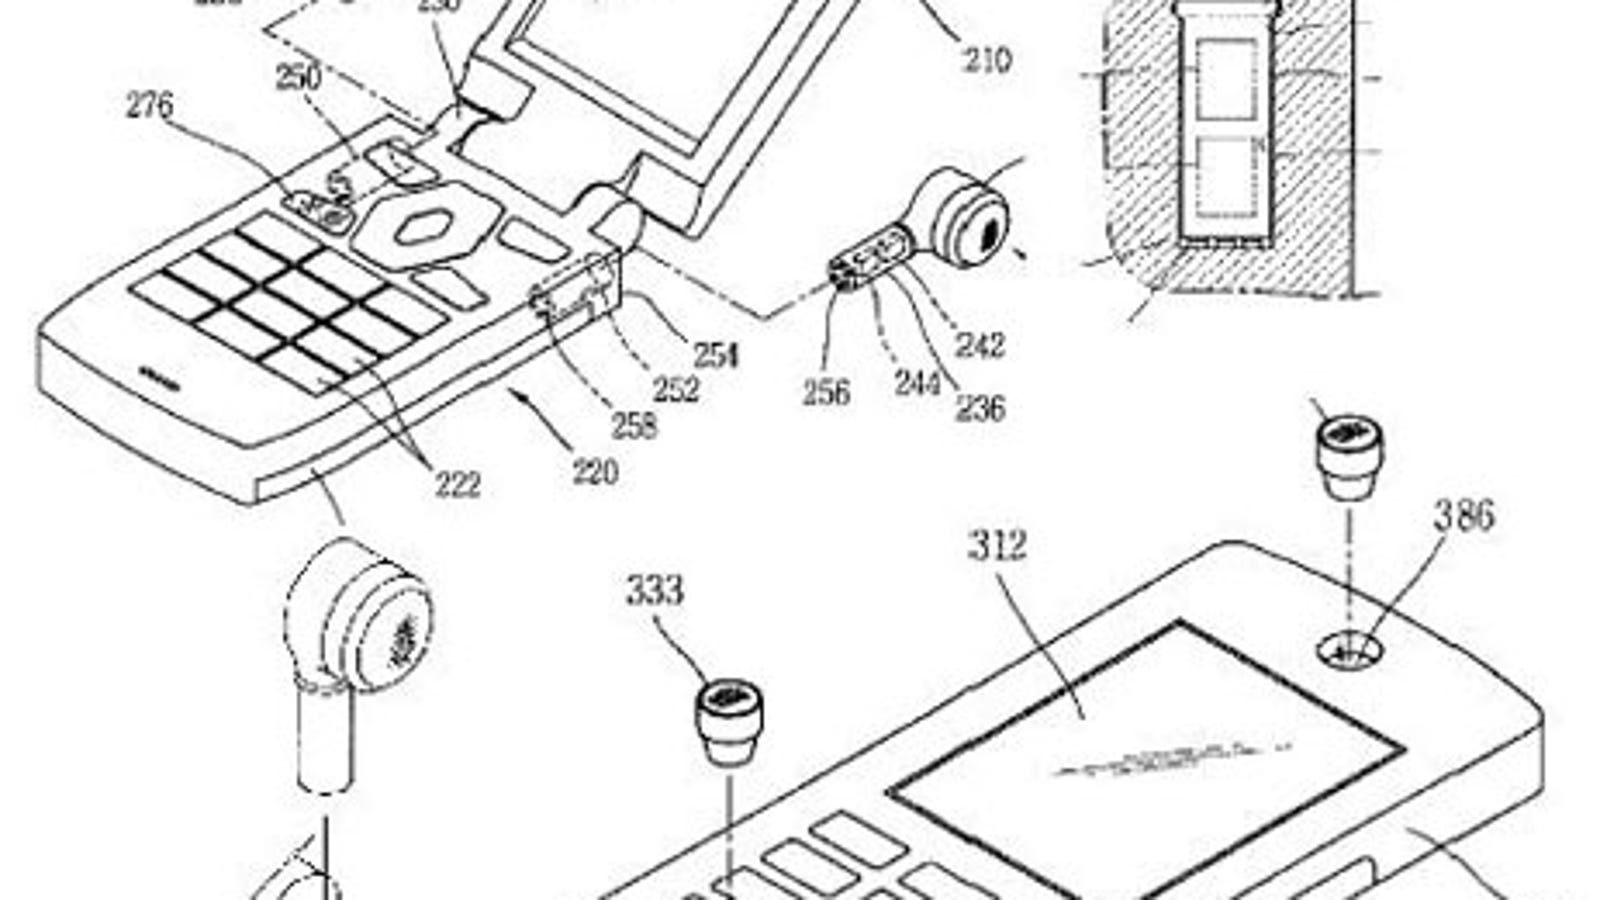 wired metal earbuds - LG Files Patent for Way-Cool Detachable Wireless Earbuds